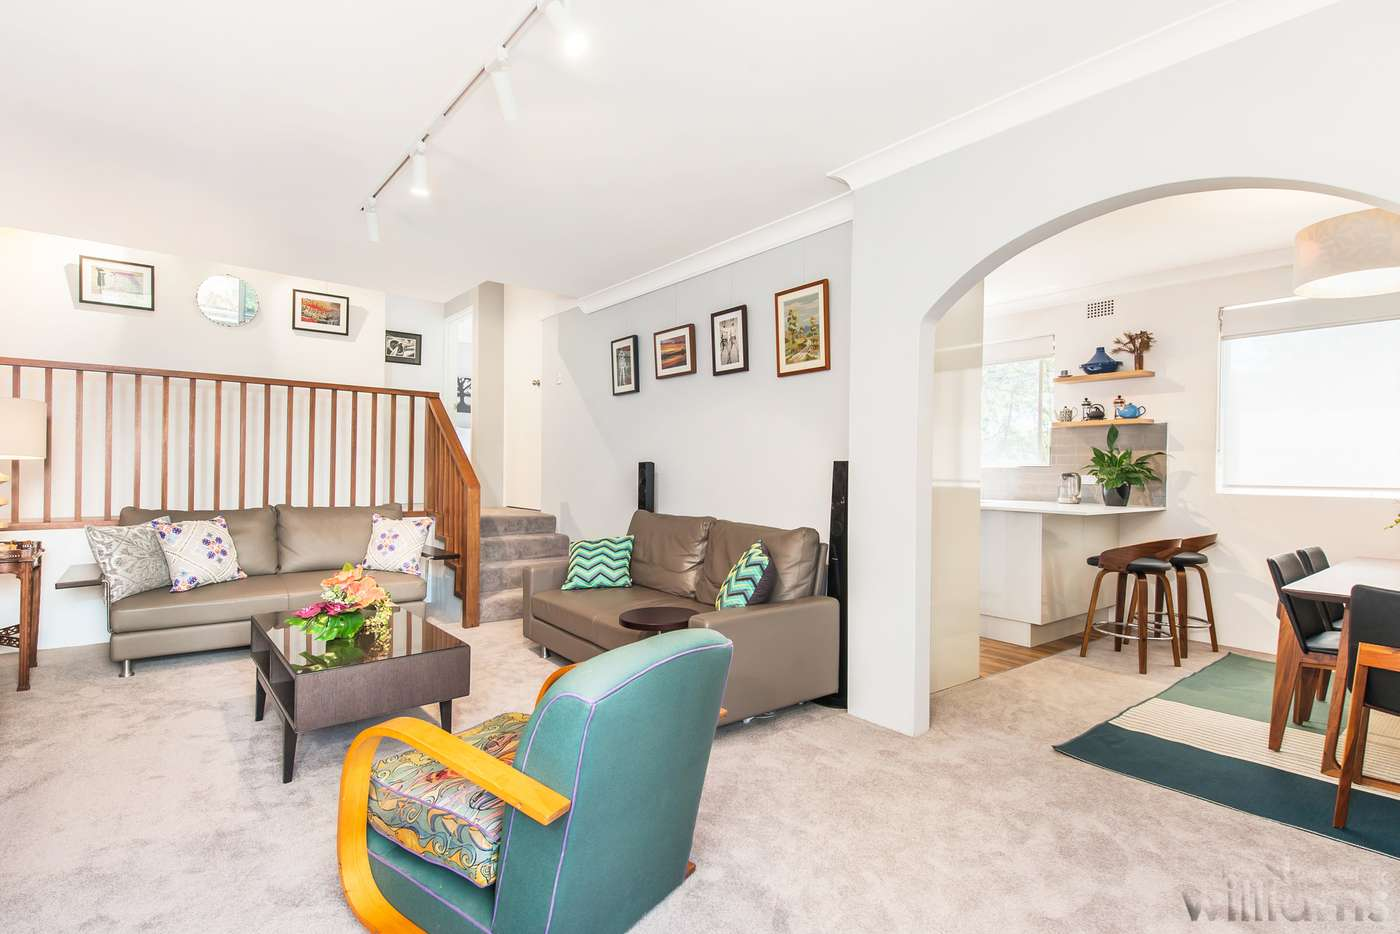 Main view of Homely apartment listing, 22/183 Hampden Road, Wareemba NSW 2046